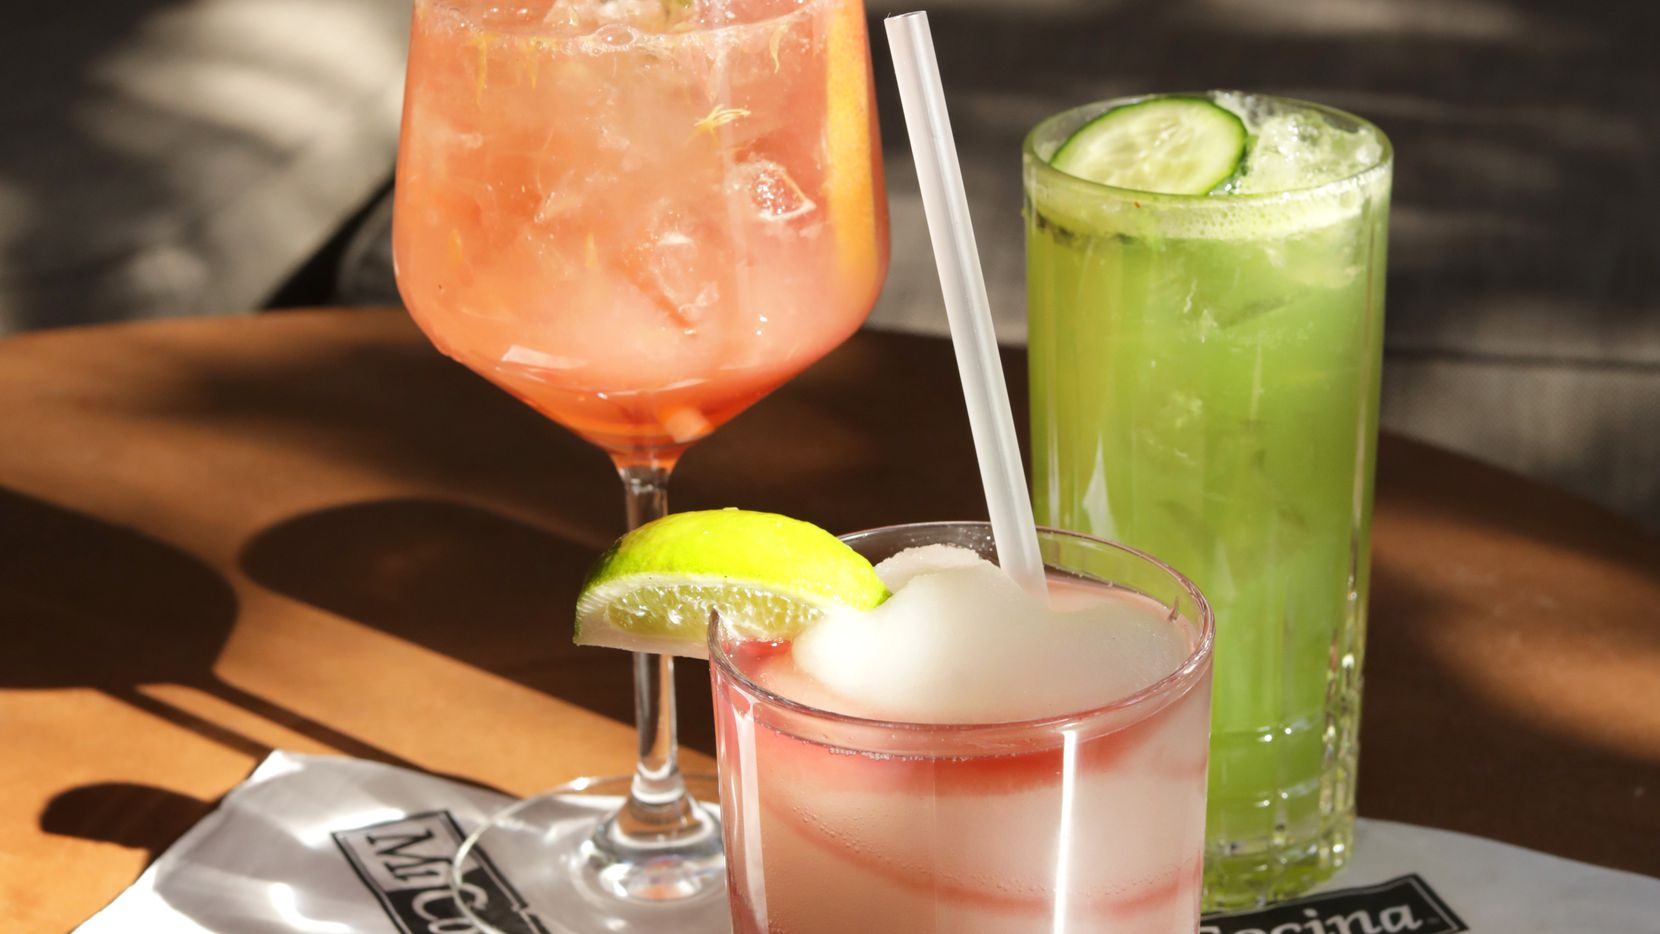 Alcohol sales at Allen bars and restaurants, including the city's Mi Cocina, were down in 2020.